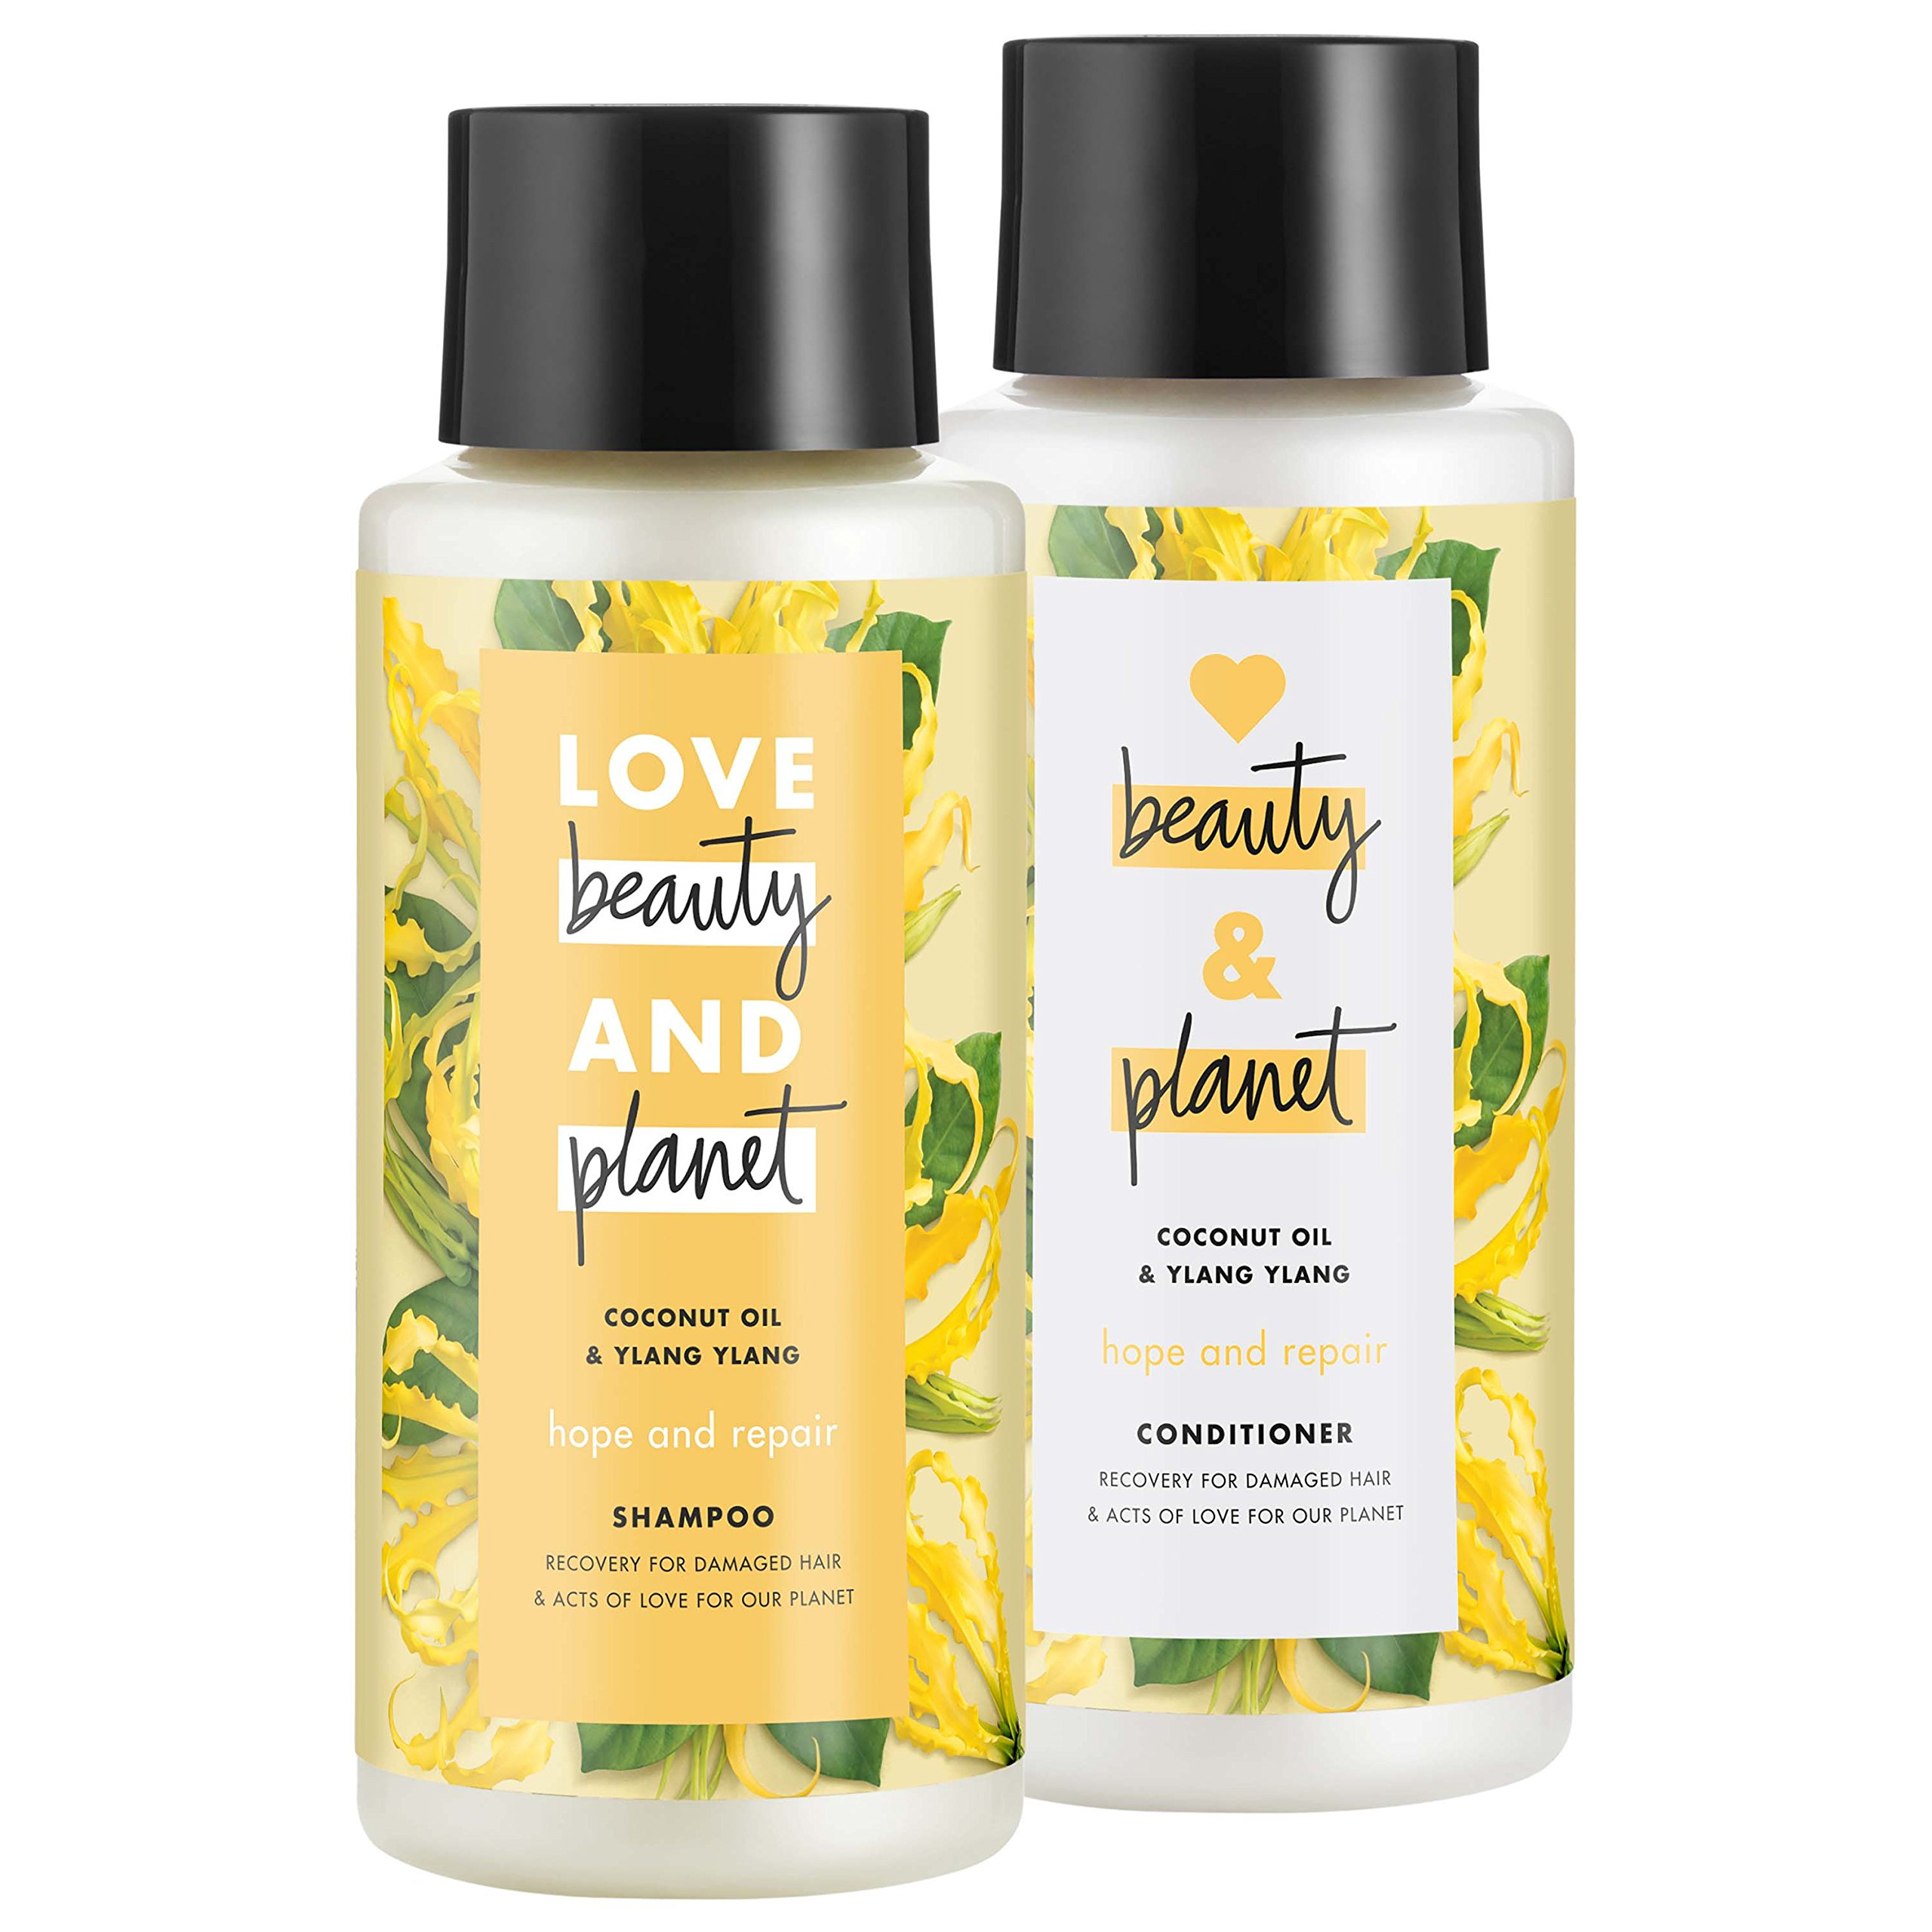 Love Beauty And Planet Shampoo and Conditioner for Damaged Hair Coconut Oil & Ylang Ylang 13.5 oz, 2 count by LBP HAIR